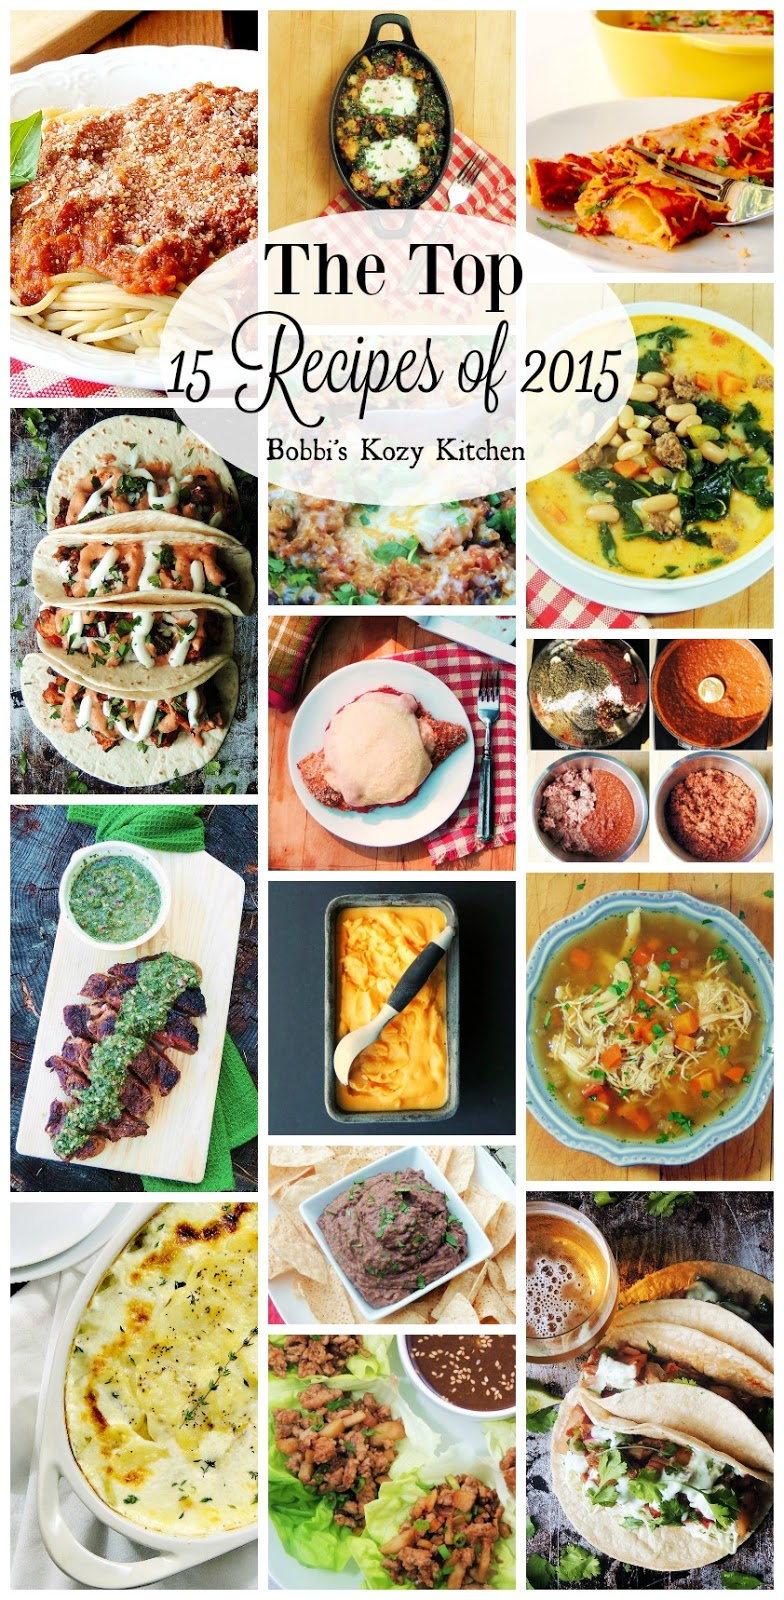 The Top 15 Recipes of 2015 on www.bobbiskozykitchen.com